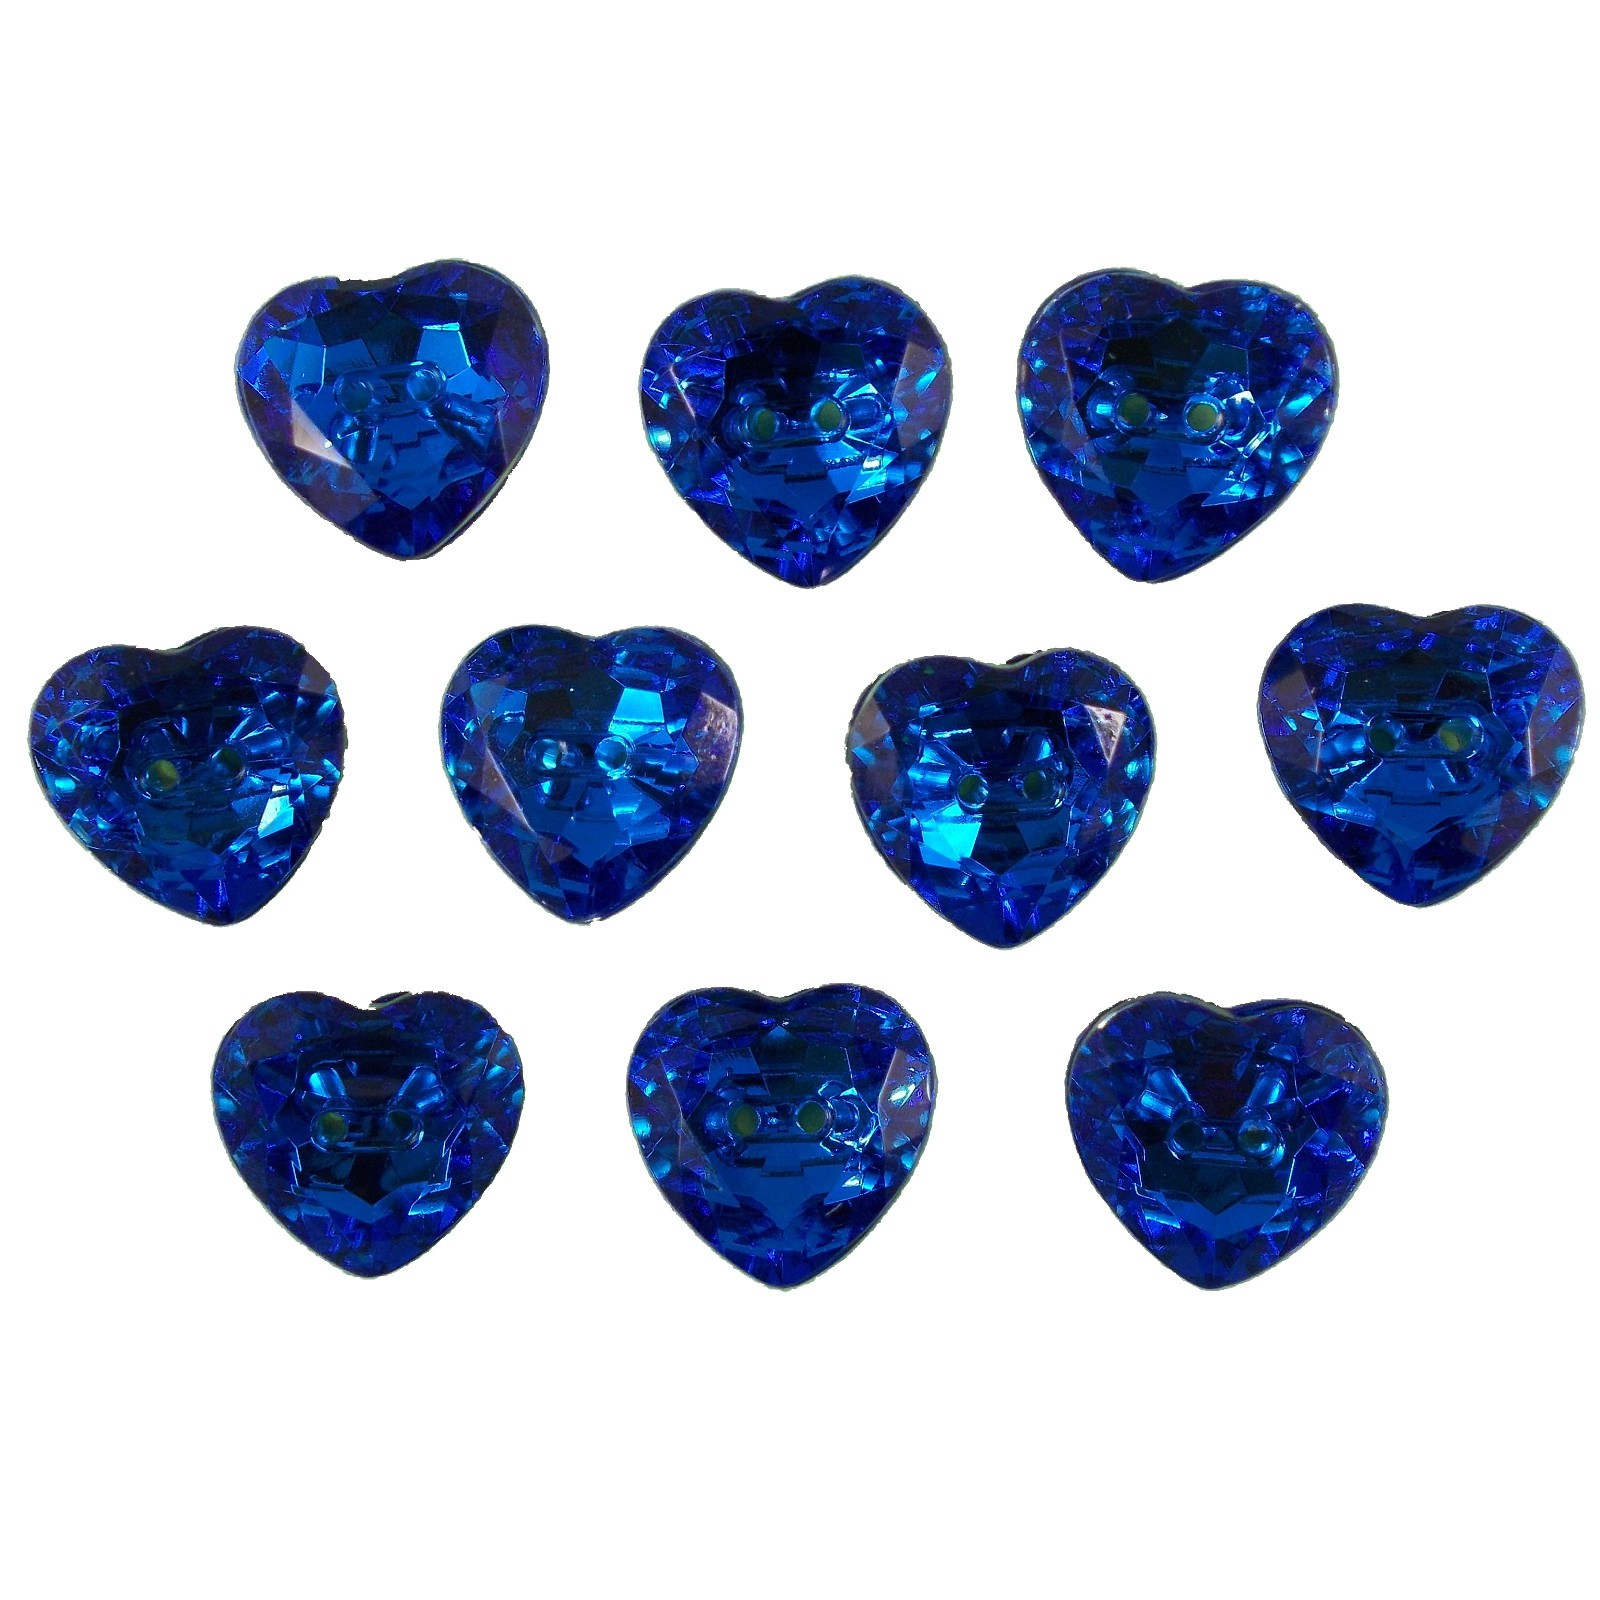 Acrylic Crystal Effect Heart Shape Buttons 16mm Blue Pack of 10